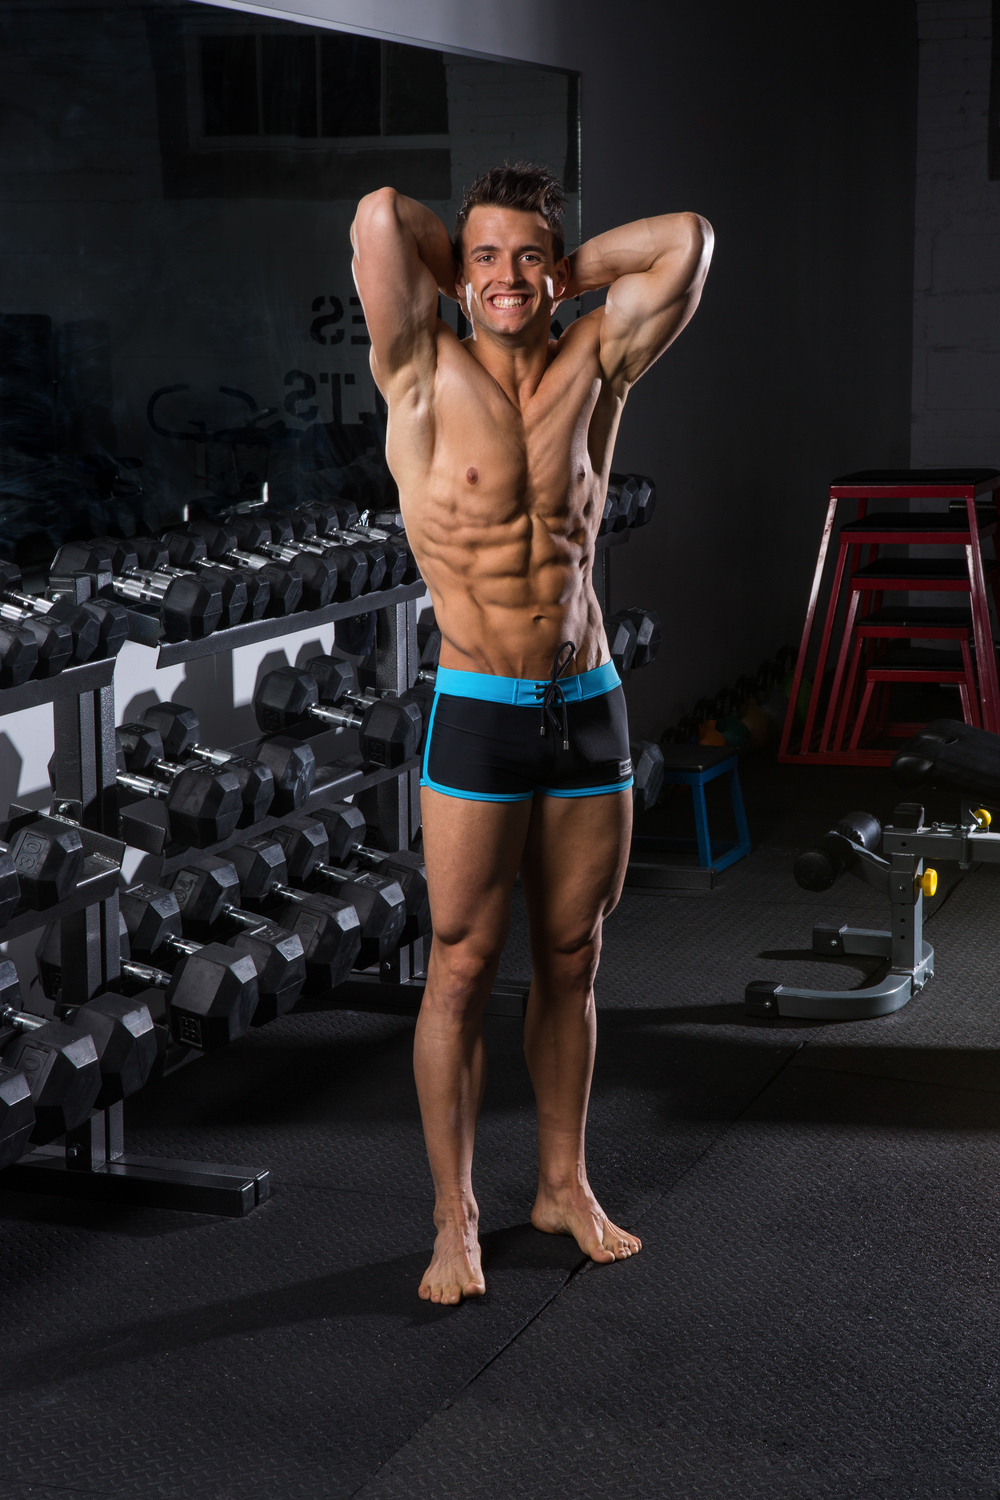 Marc Morris - Physique Competitor